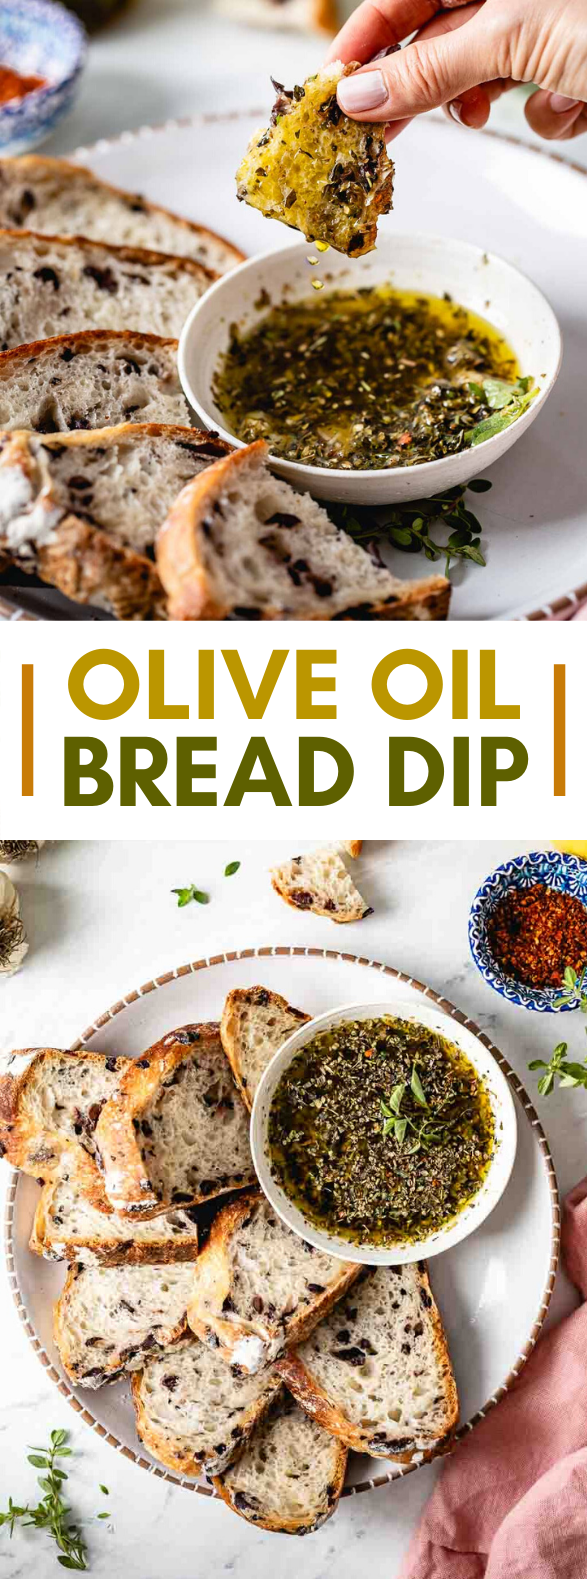 QUICK AND EASY OLIVE OIL BREAD DIP RECIPE (THE BEST 5-MINUTE APPETIZER) #dinner #simplerecipes